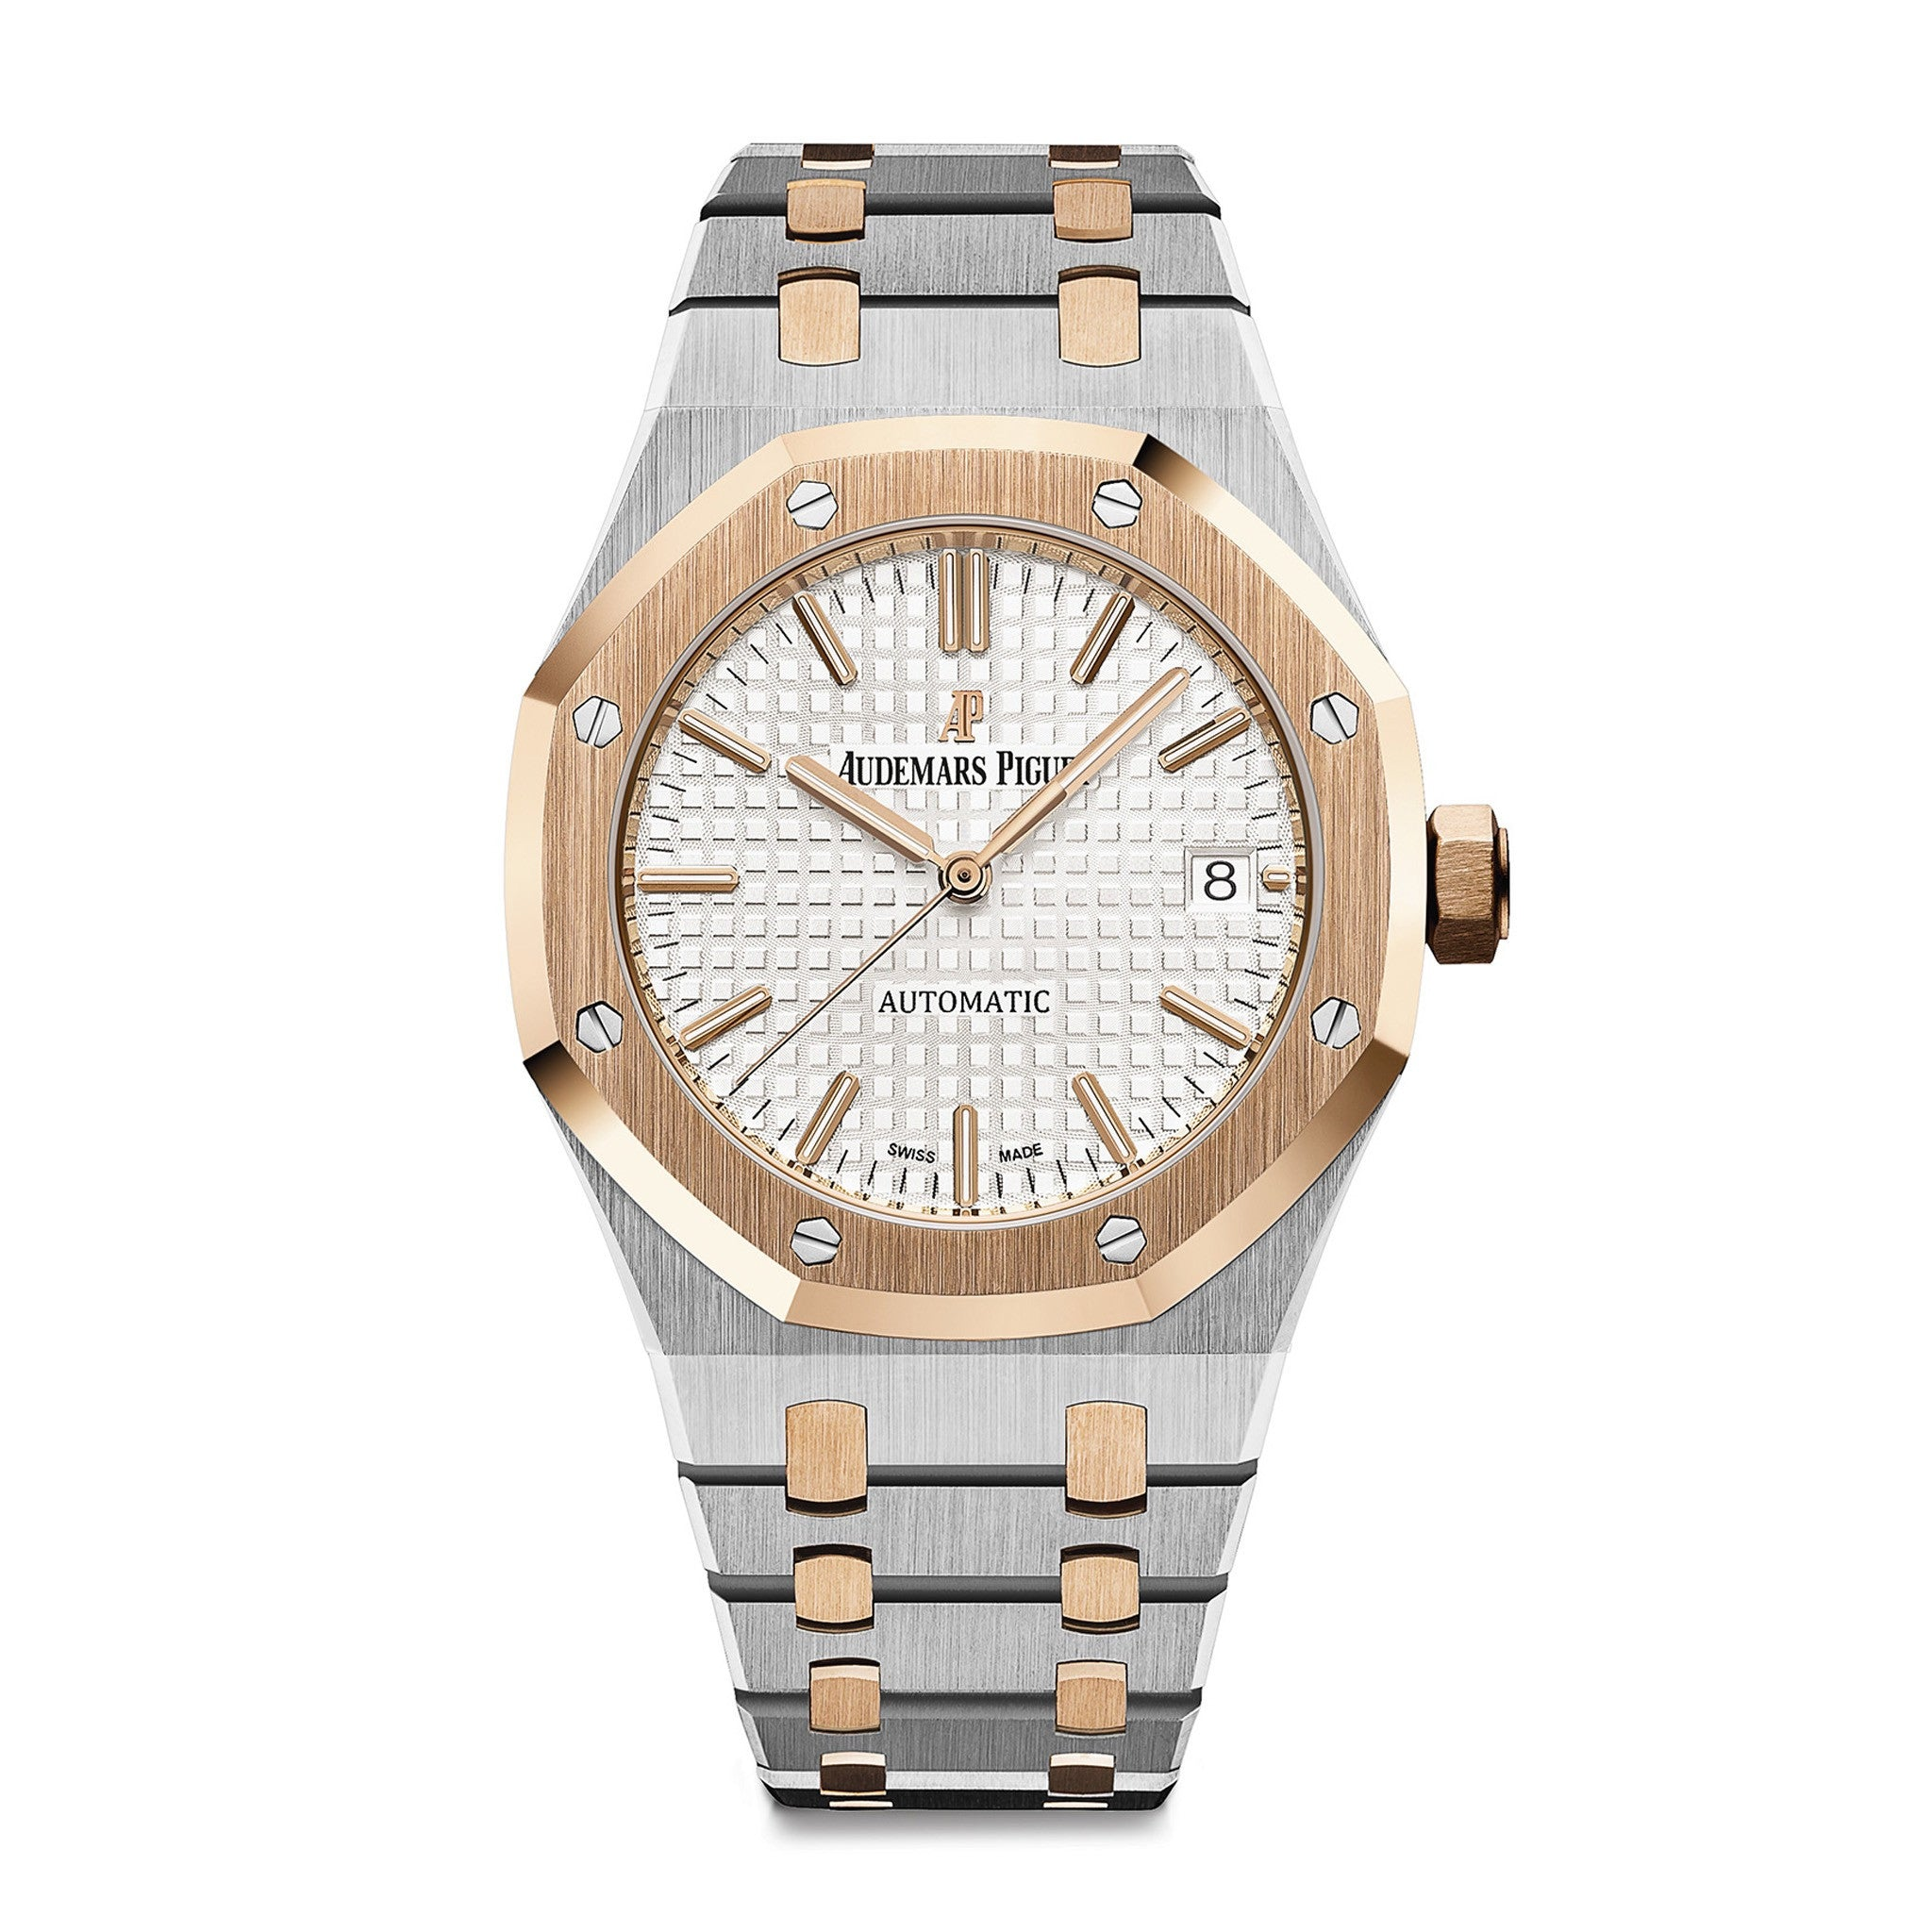 Royal Oak Ladies Selfwinding 15450SR.OO.1256SR.01 - Audemars Piguet